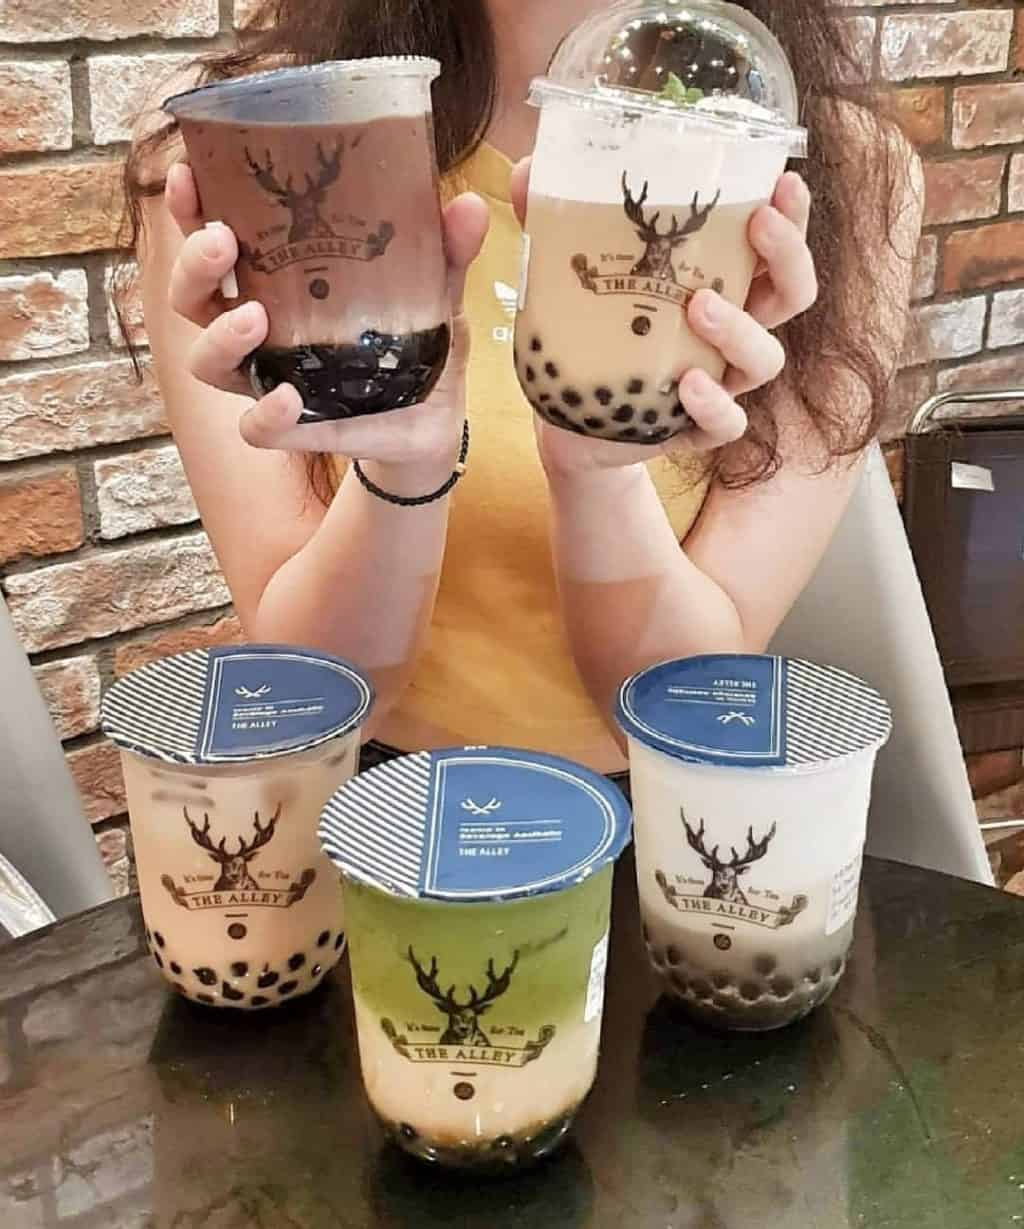 The Alley: Taiwan's Iconic Milk Tea shop to open in Cebu